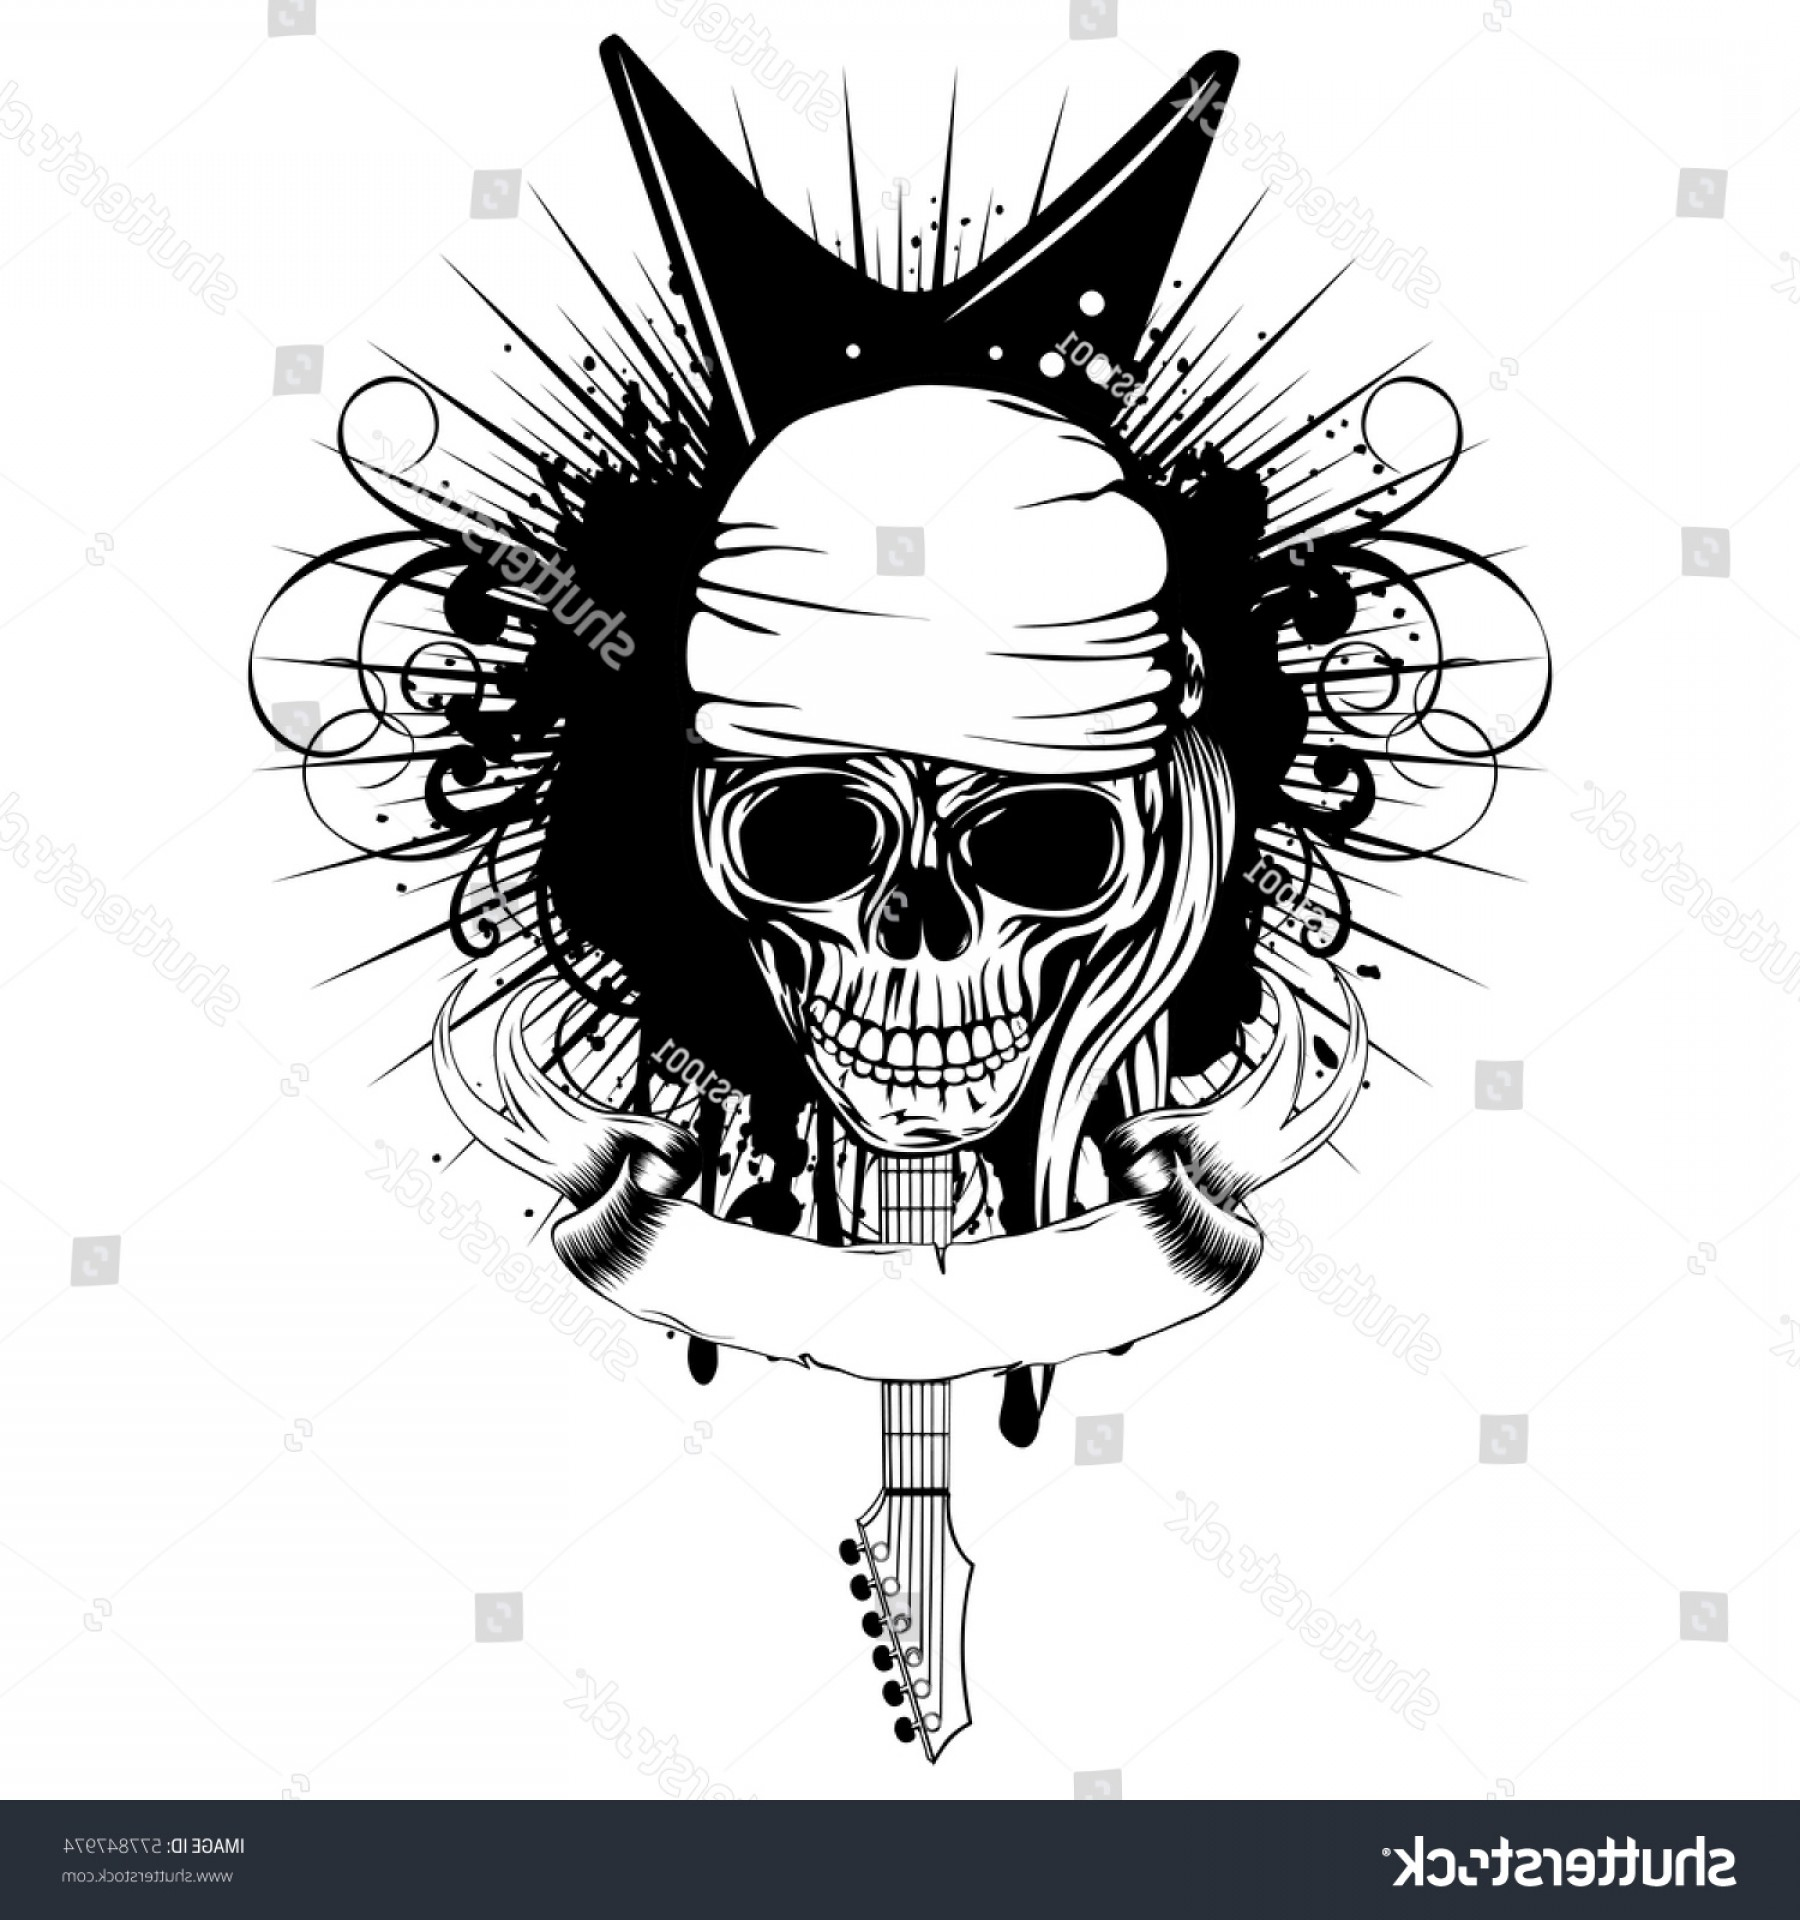 1800x1920 Vector Illustration Grunge Skull Bandana Guitar Rongholland